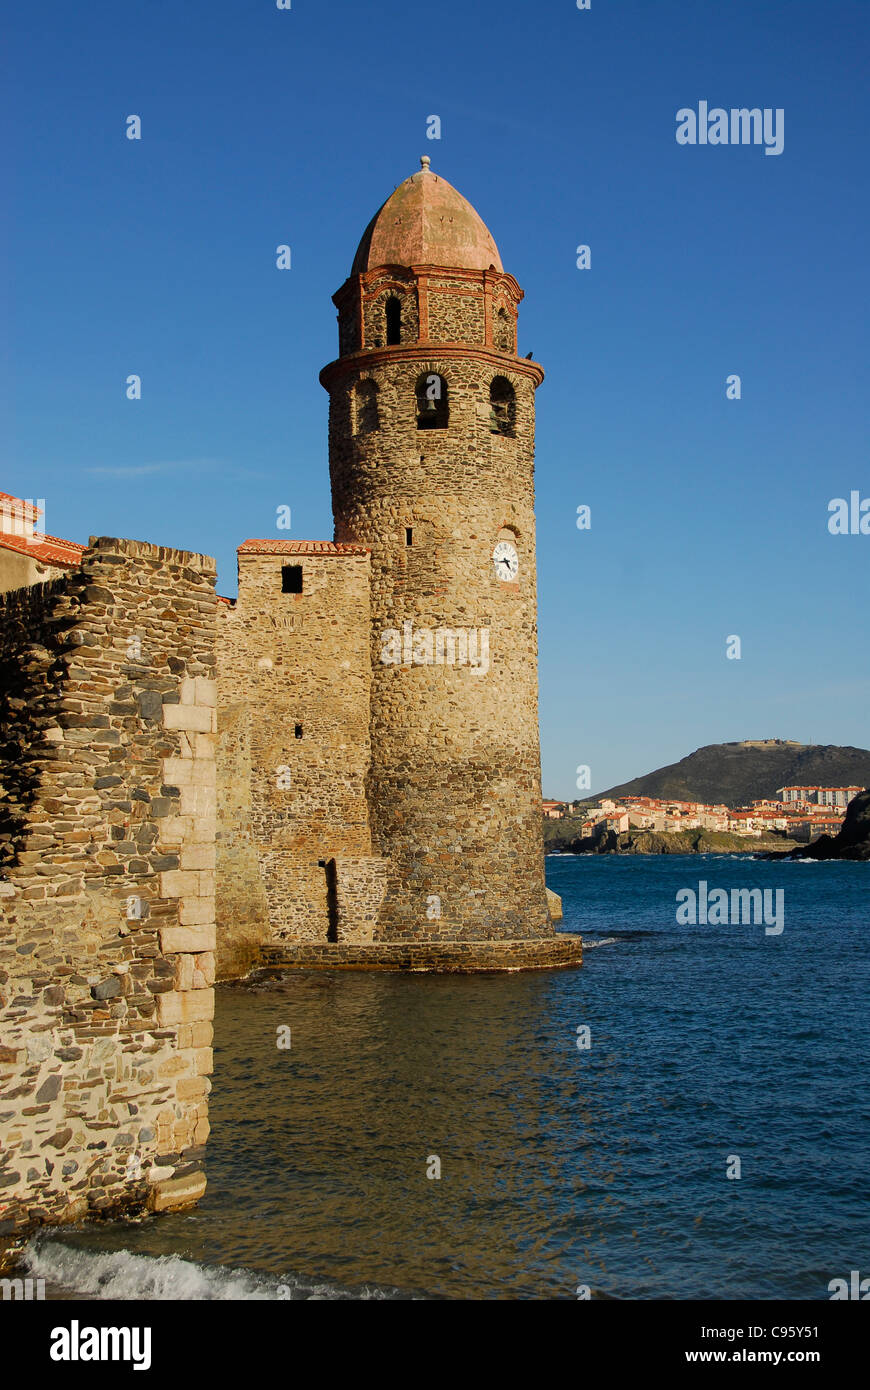 Bell tower Notre-Dame-des-Anges, landmark church of Collioure at the Côte Vermeille of Pyrénées-Orientales in Roussillon, Stock Photo